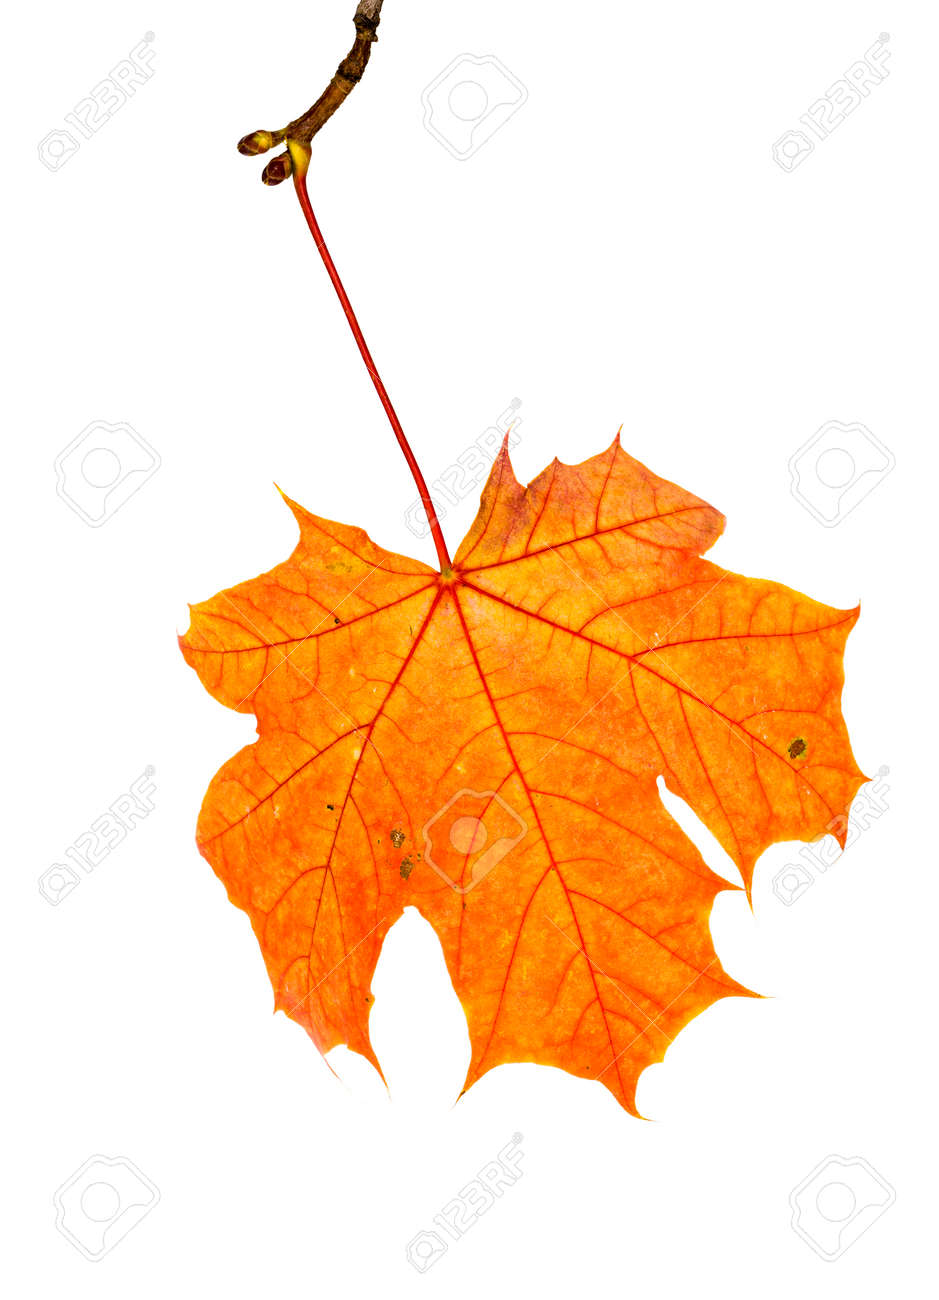 maple leaves changed color in the autumn season, close-up of foliage isolated on a white background - 172179701